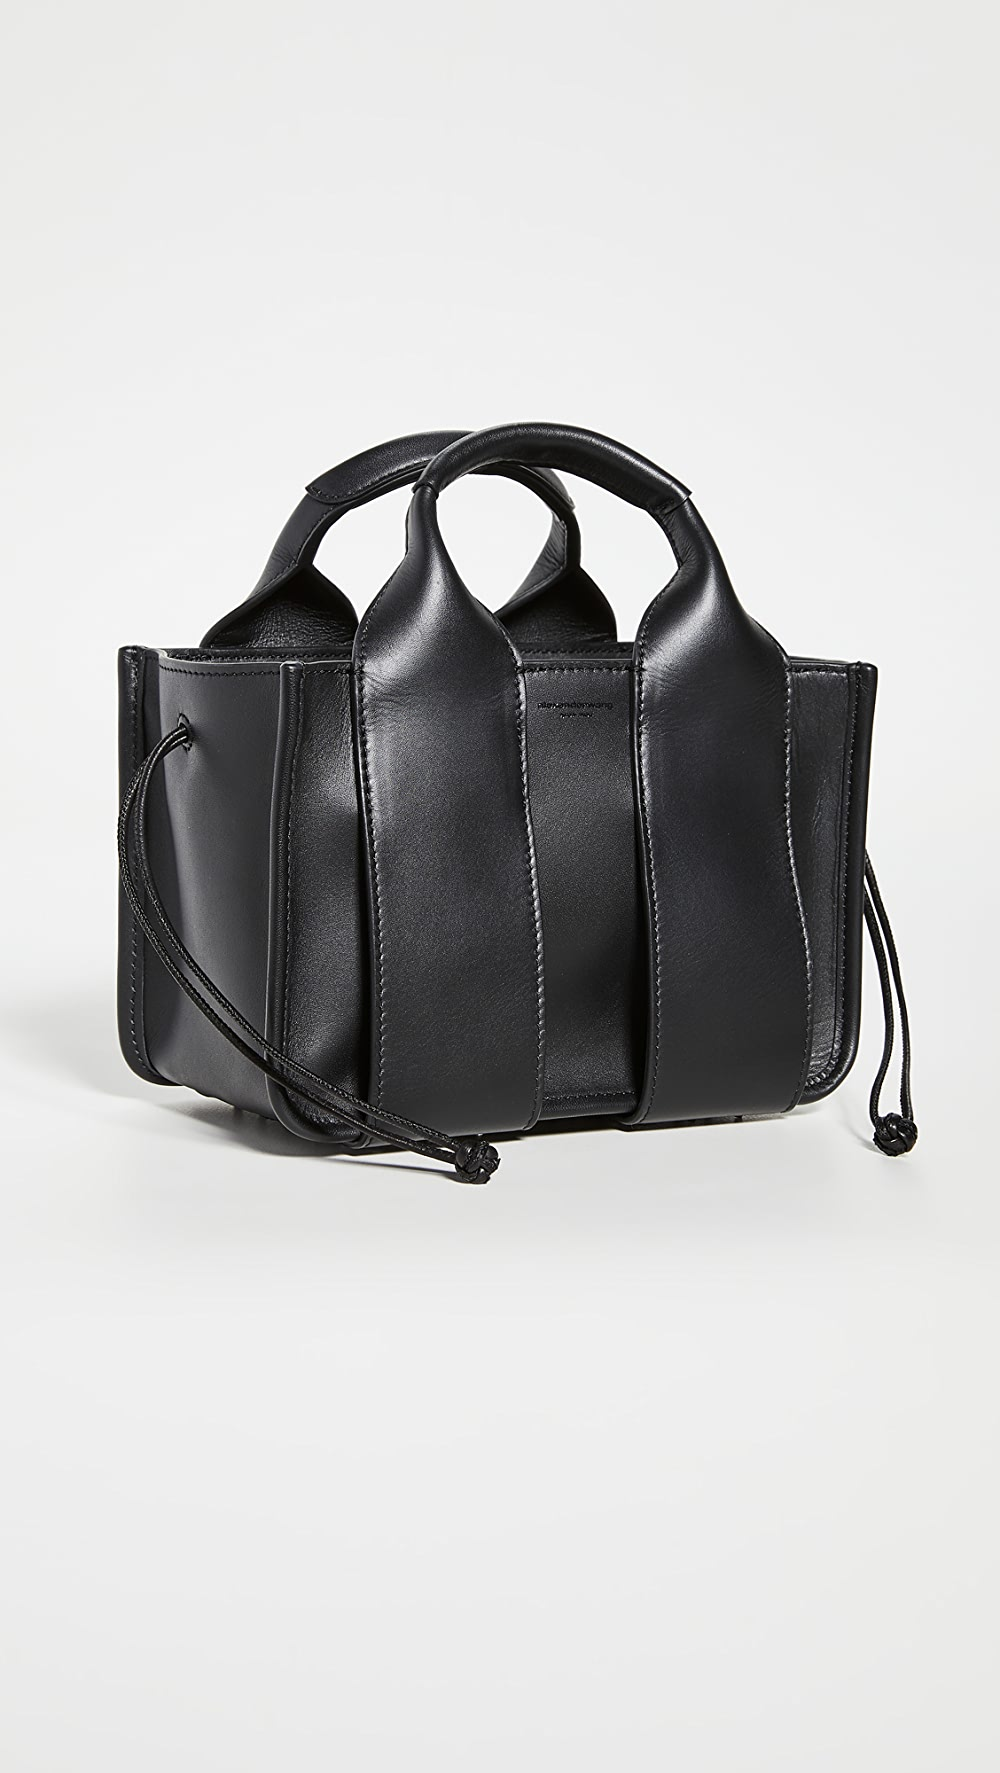 Bright Alexander Wang - Rocco Small Tote Modern And Elegant In Fashion